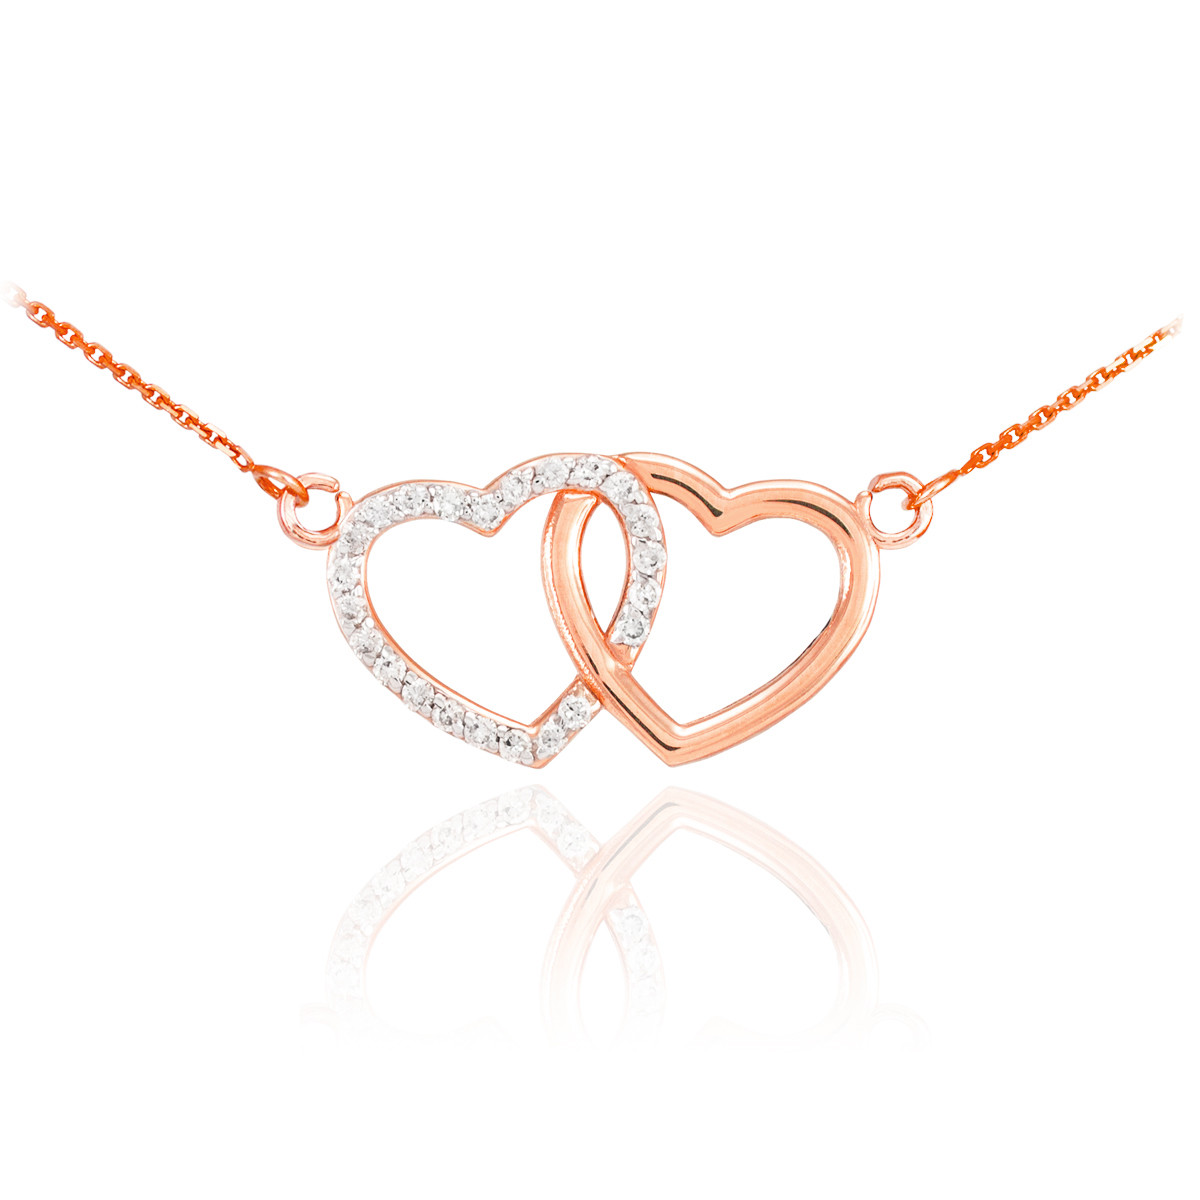 2a742385f8144f 14K Rose Gold Double Heart Pendant Sideways Necklace with 23 round Diamonds